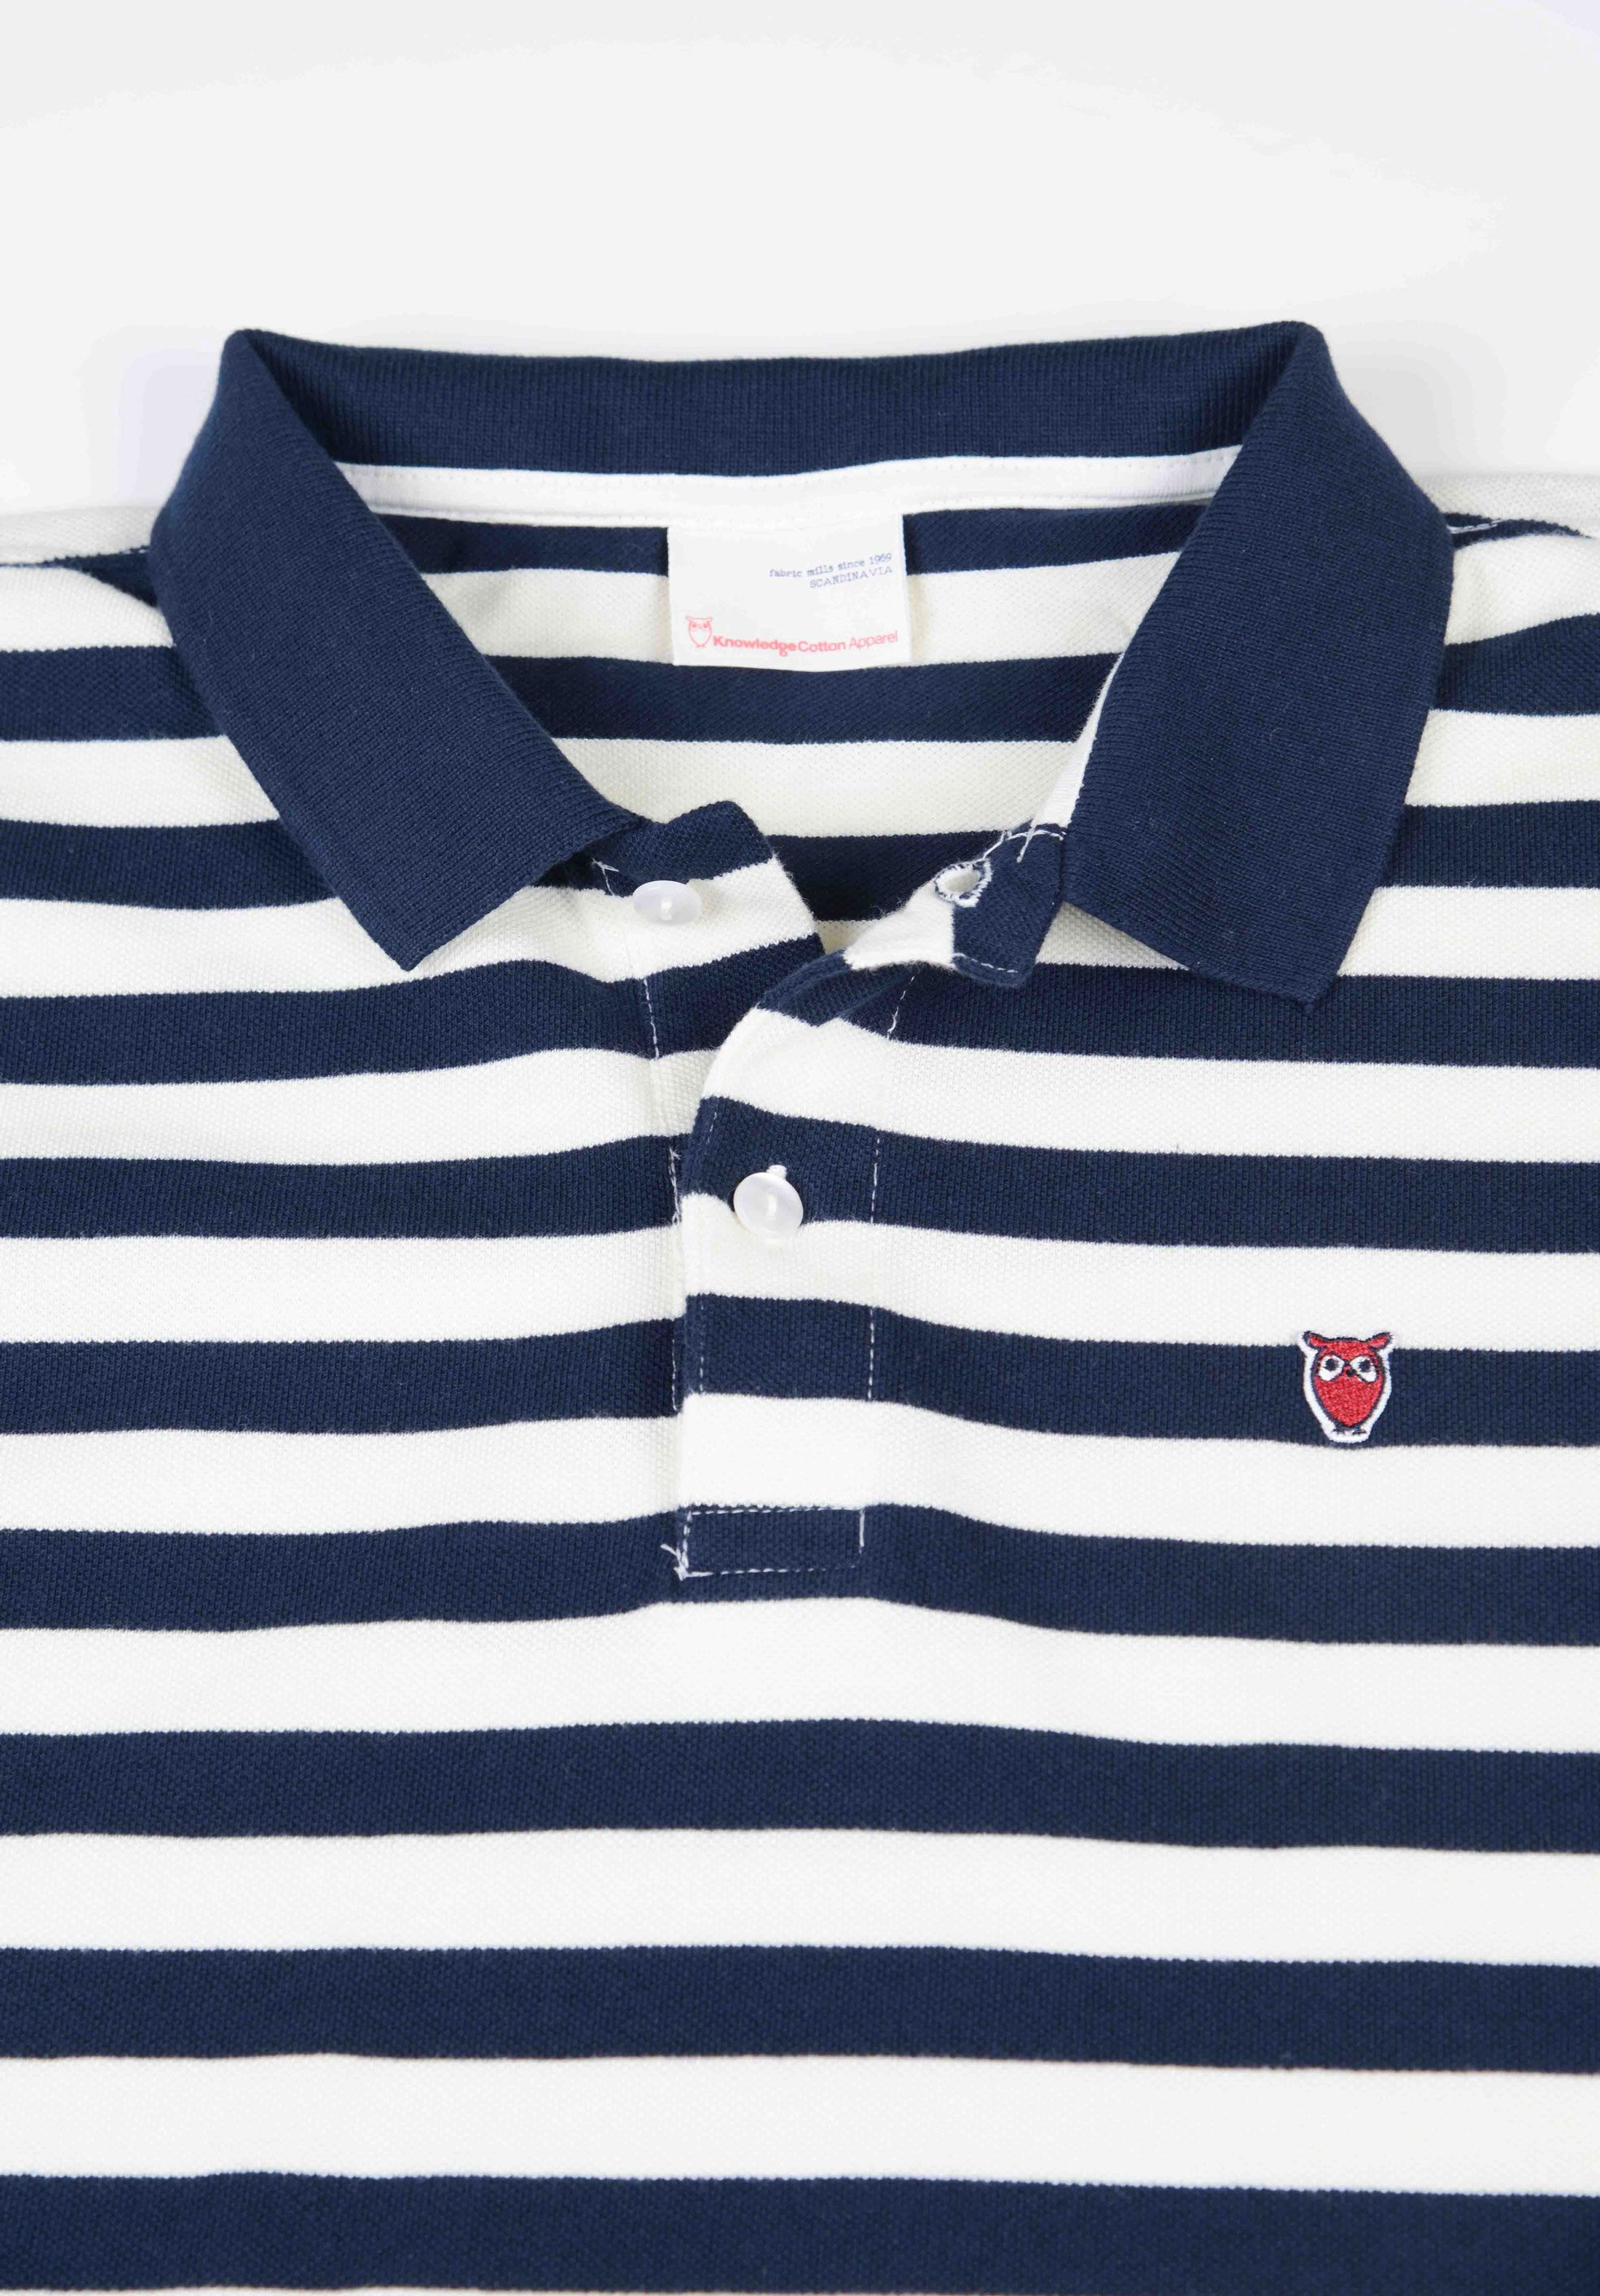 Poloshow Knowledge Cotton Apparel Stripes V80 9516 2